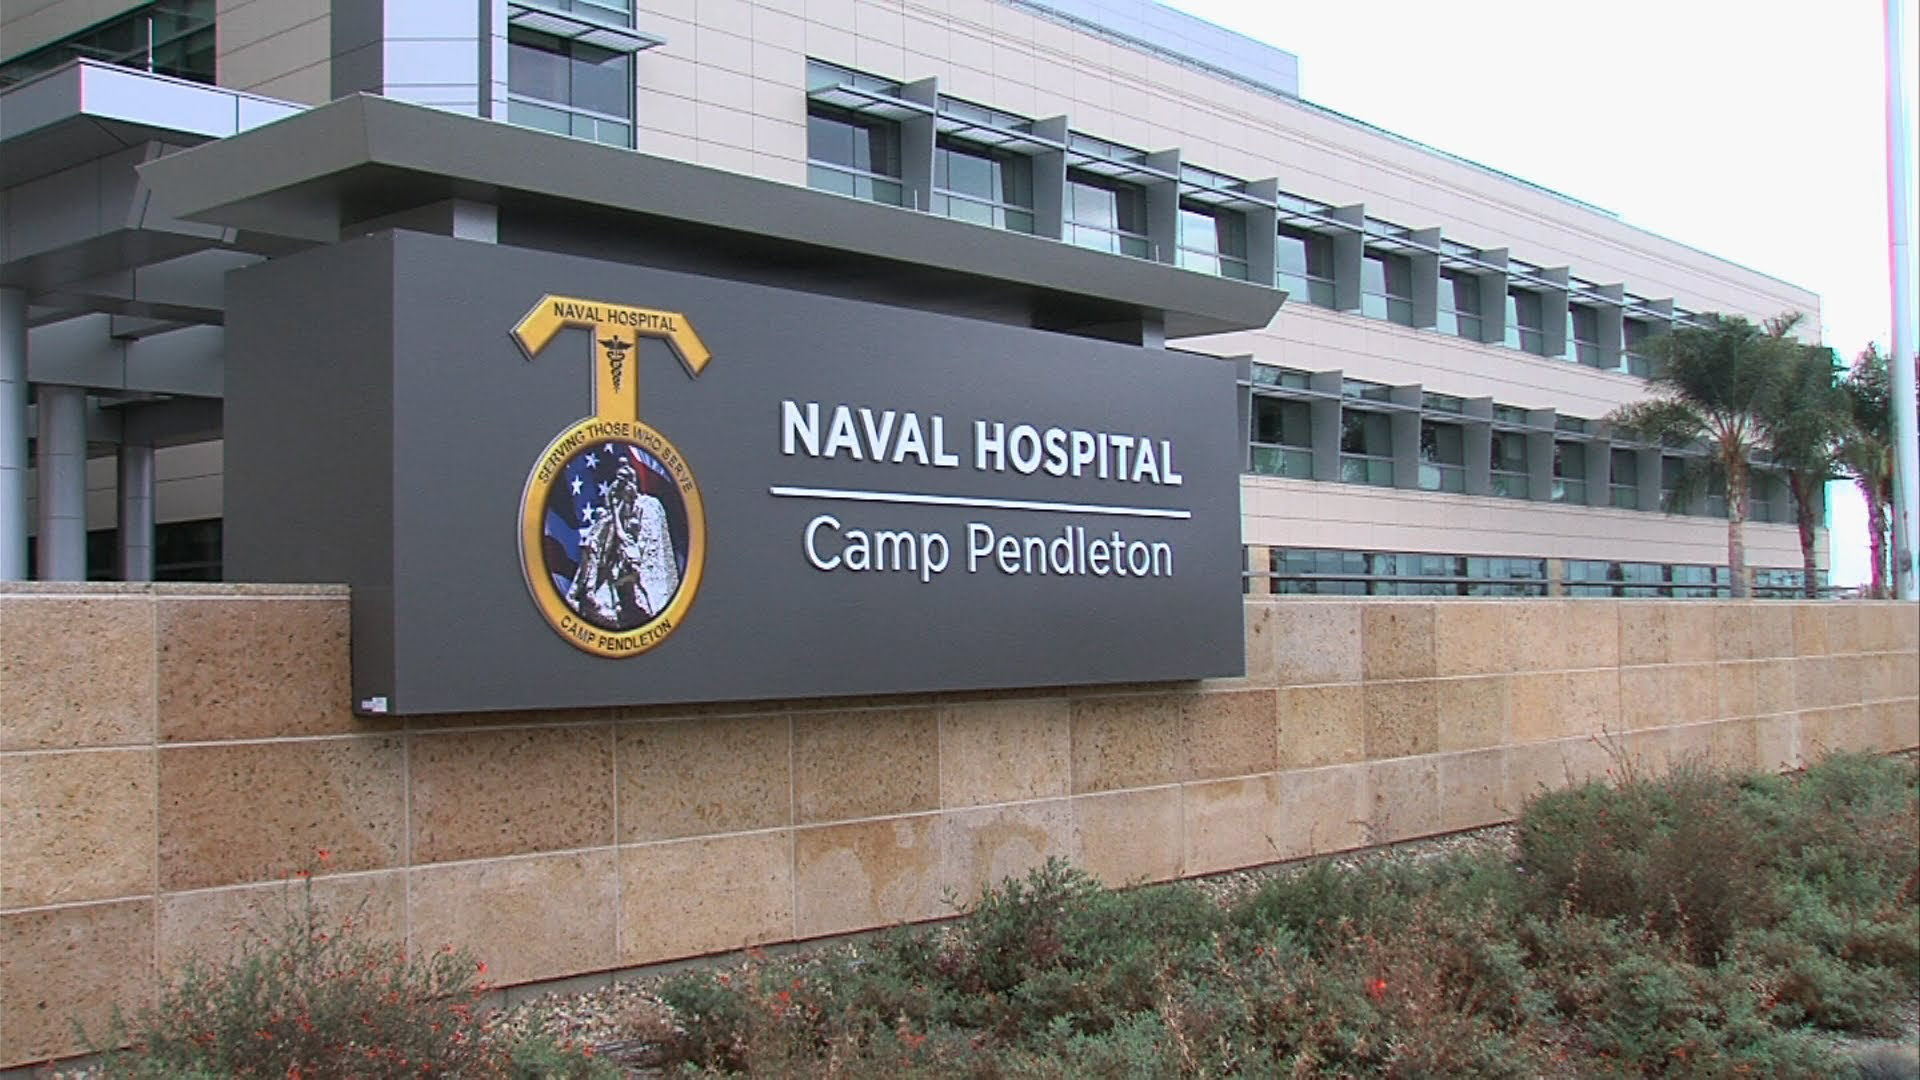 The Naval Hospital at Camp Pendleton